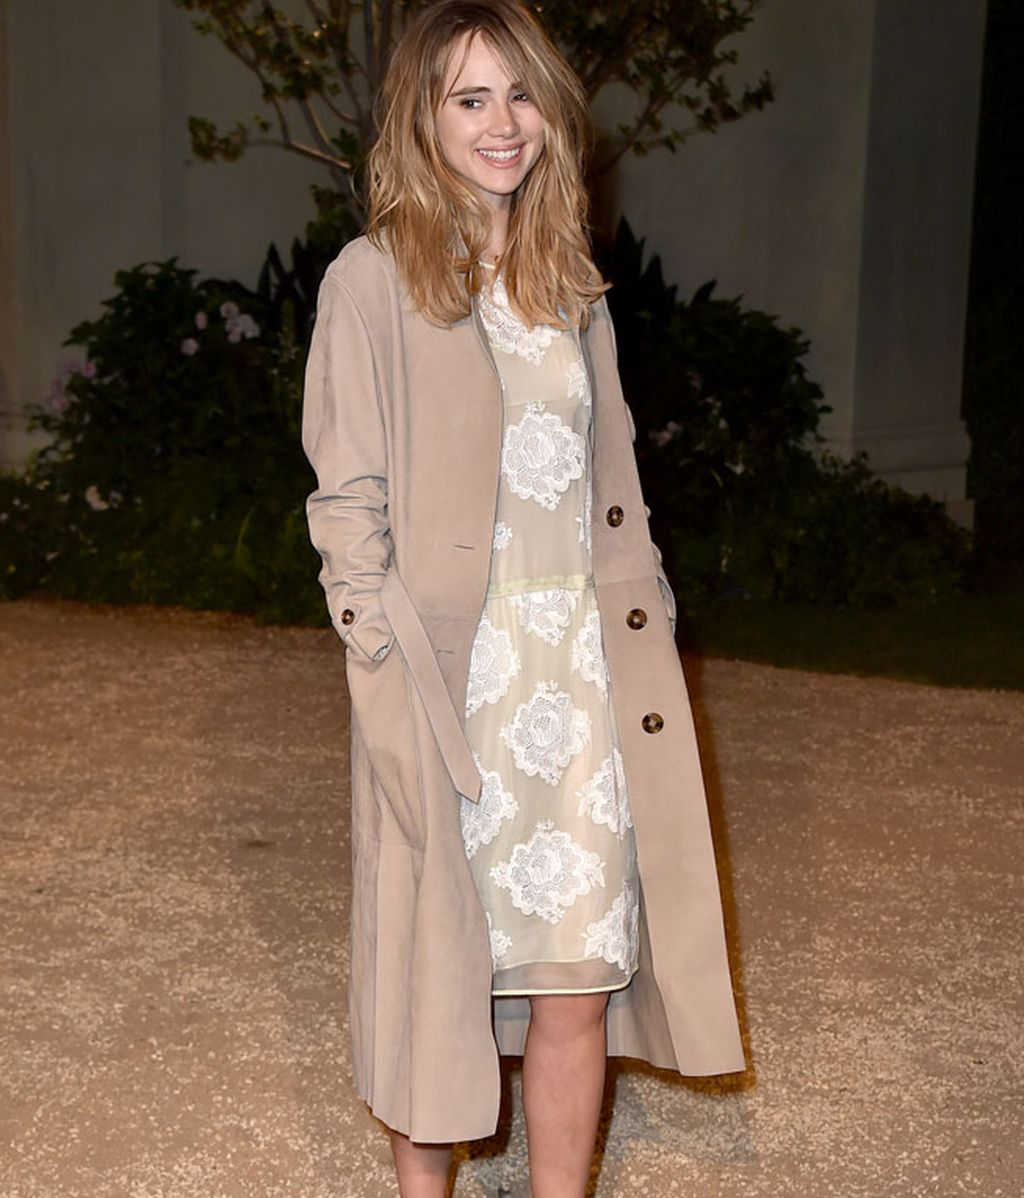 Suki Waterhouse acudió con un look de color pastel